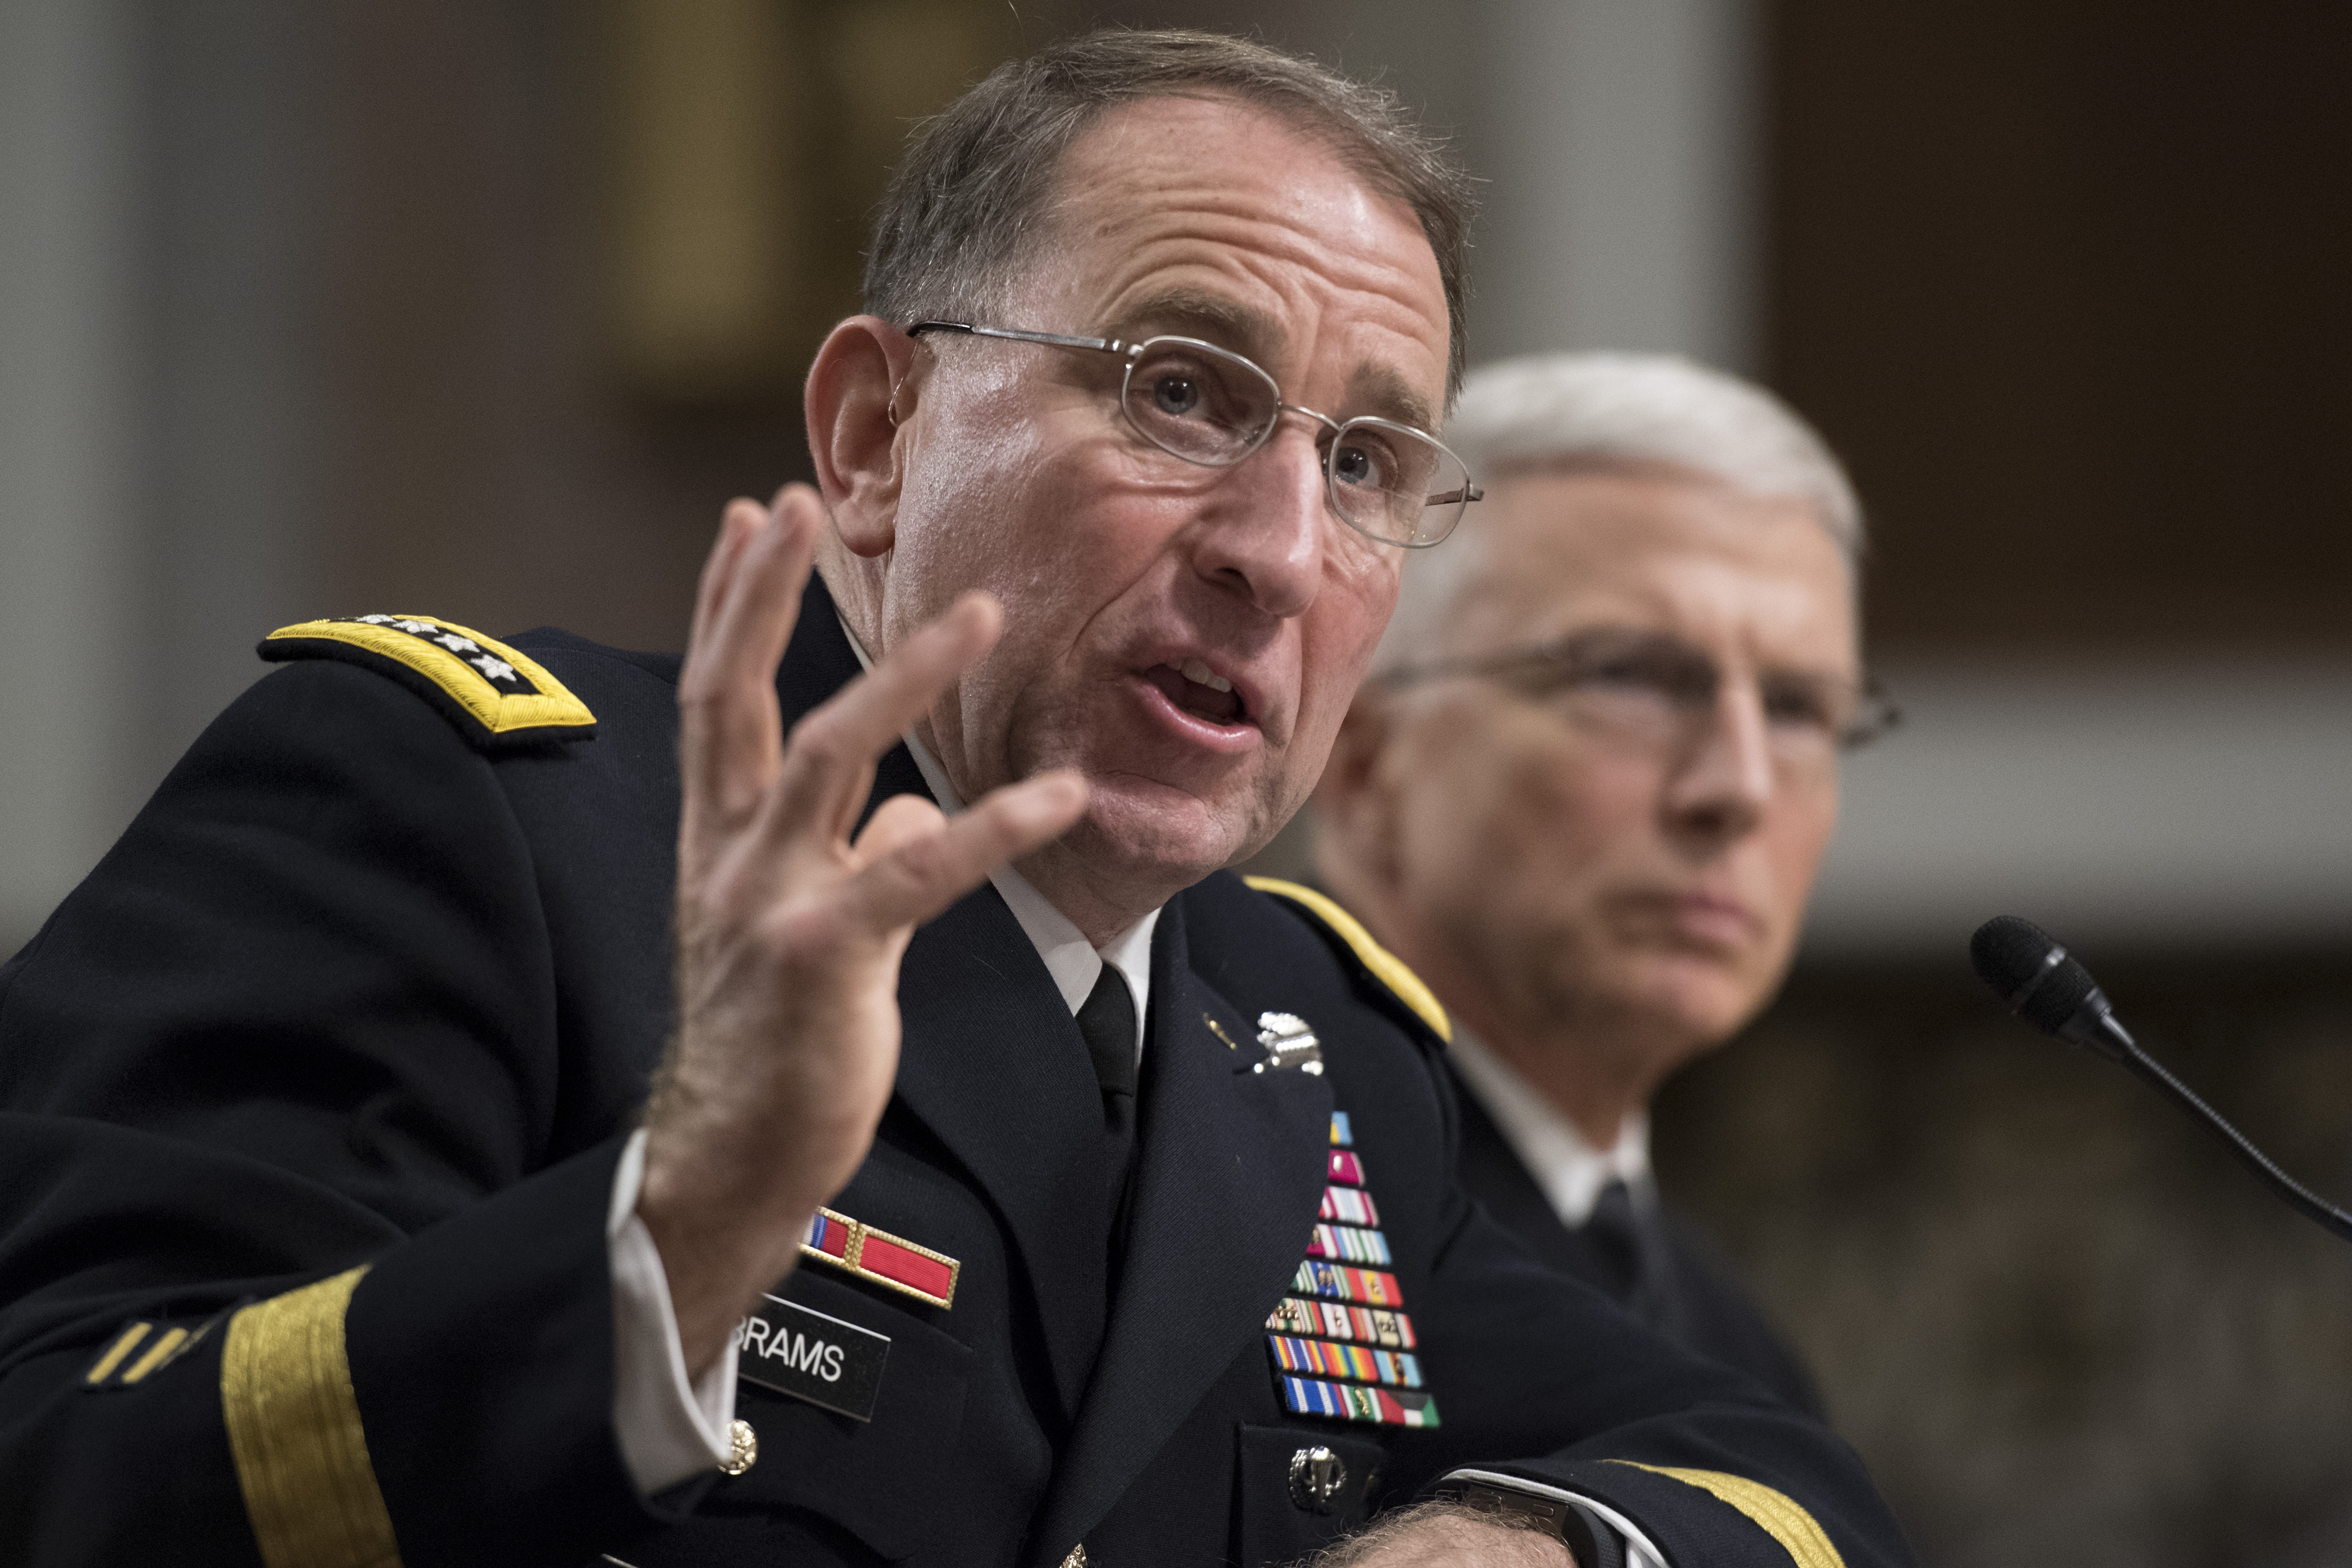 U.S. Army General Robert Abrams (L) testifies during his nomination hearing to be commander of all U.S. forces in Korea, on Capitol Hill in Washington, Sept. 25, 2018.